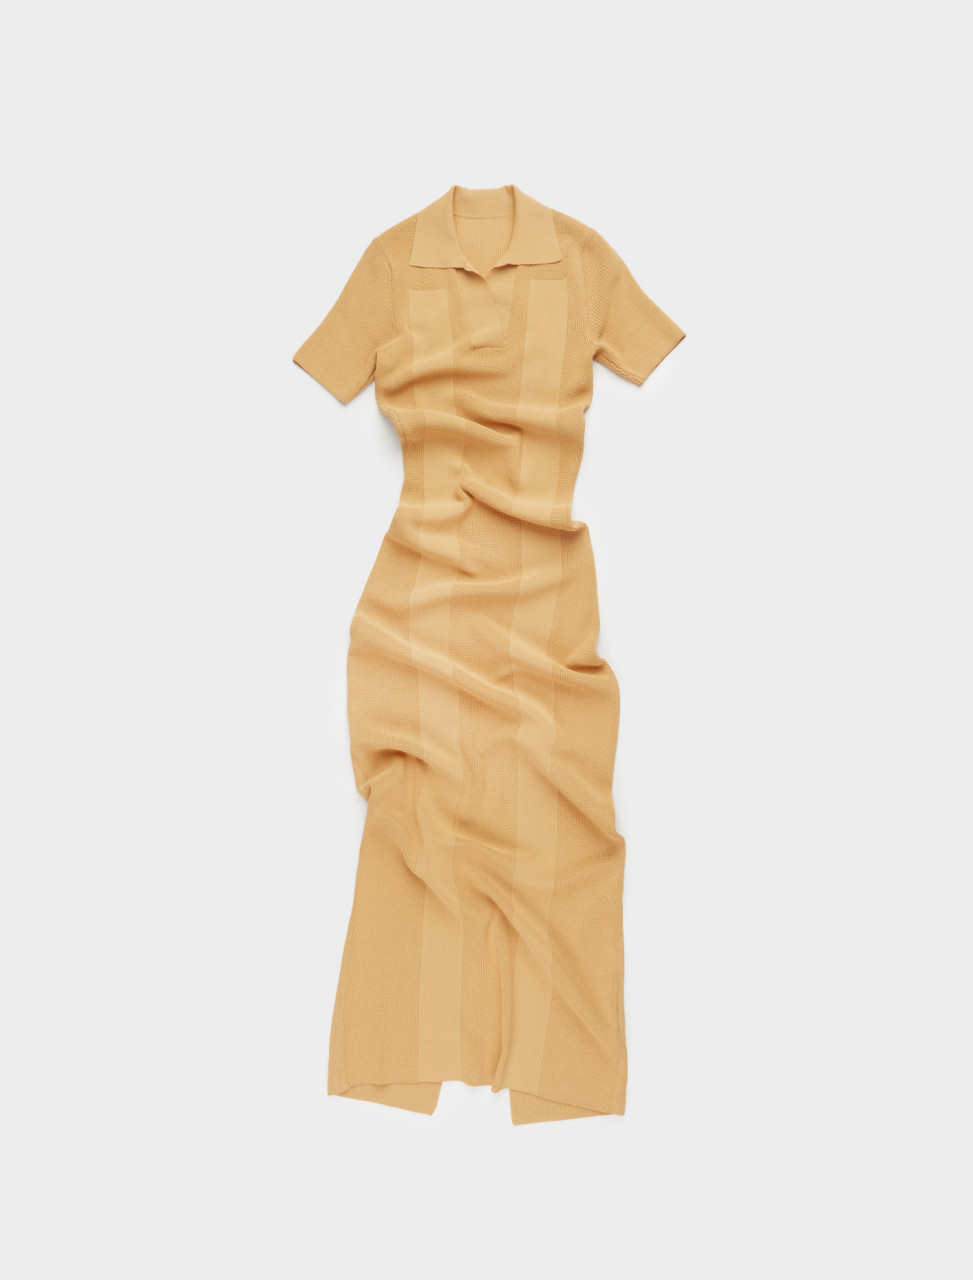 203KN15-203-202290 JACQUEMUS LA ROBE MAILLE POLO IN DARK YELLOW FRONT